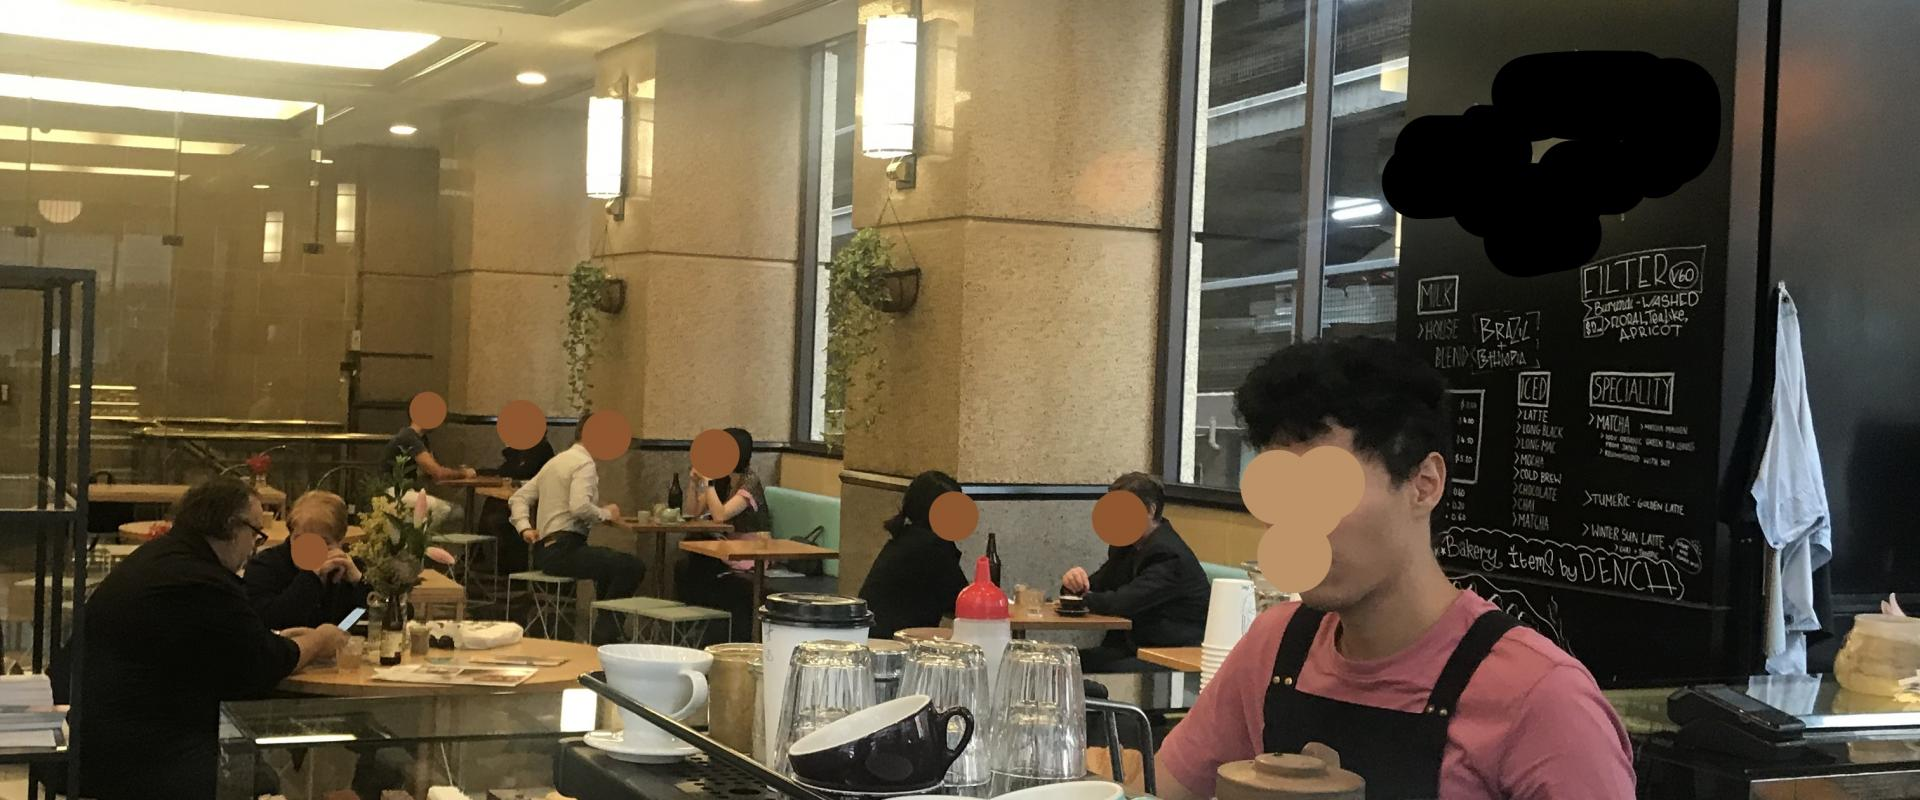 Well Set Up Café for Sale in CBD $35,000